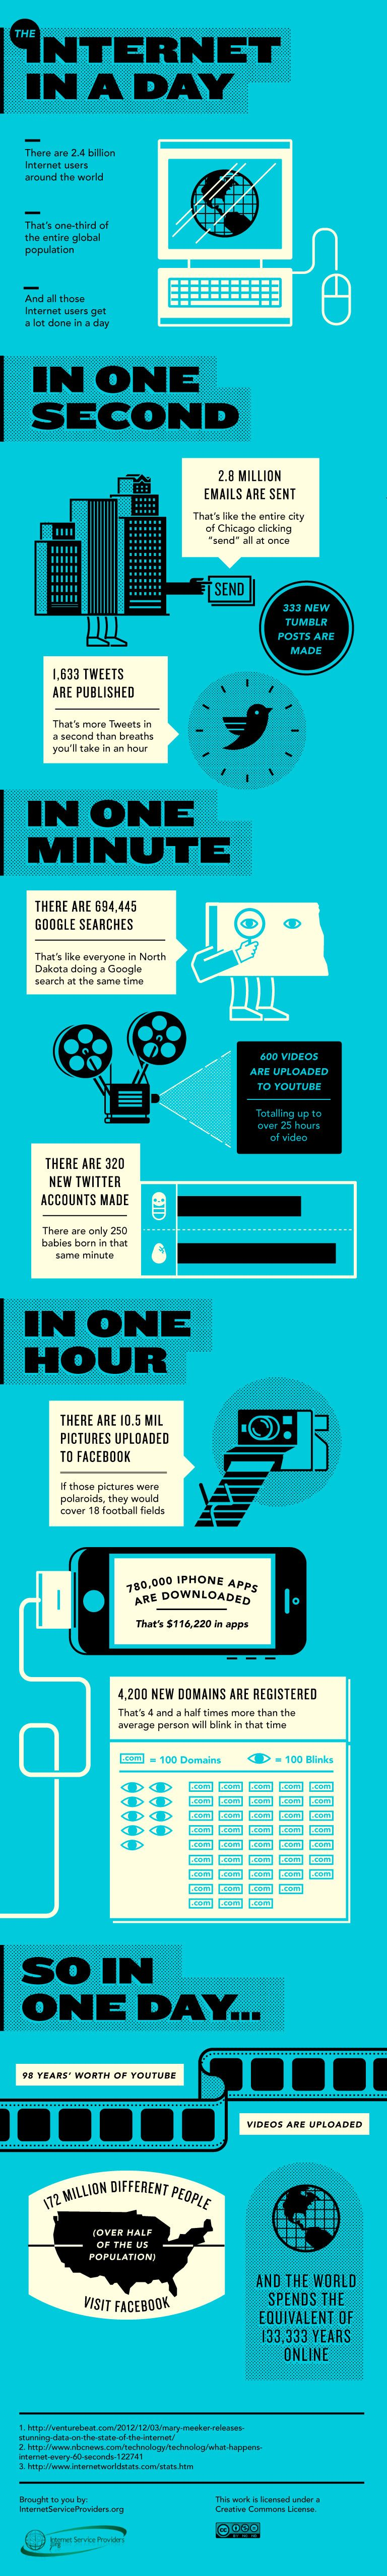 Internet Day Infographic The Numbers Seem On The Low Side To Me Do They To You Infographic Marketing Social Media Infographic Infographic